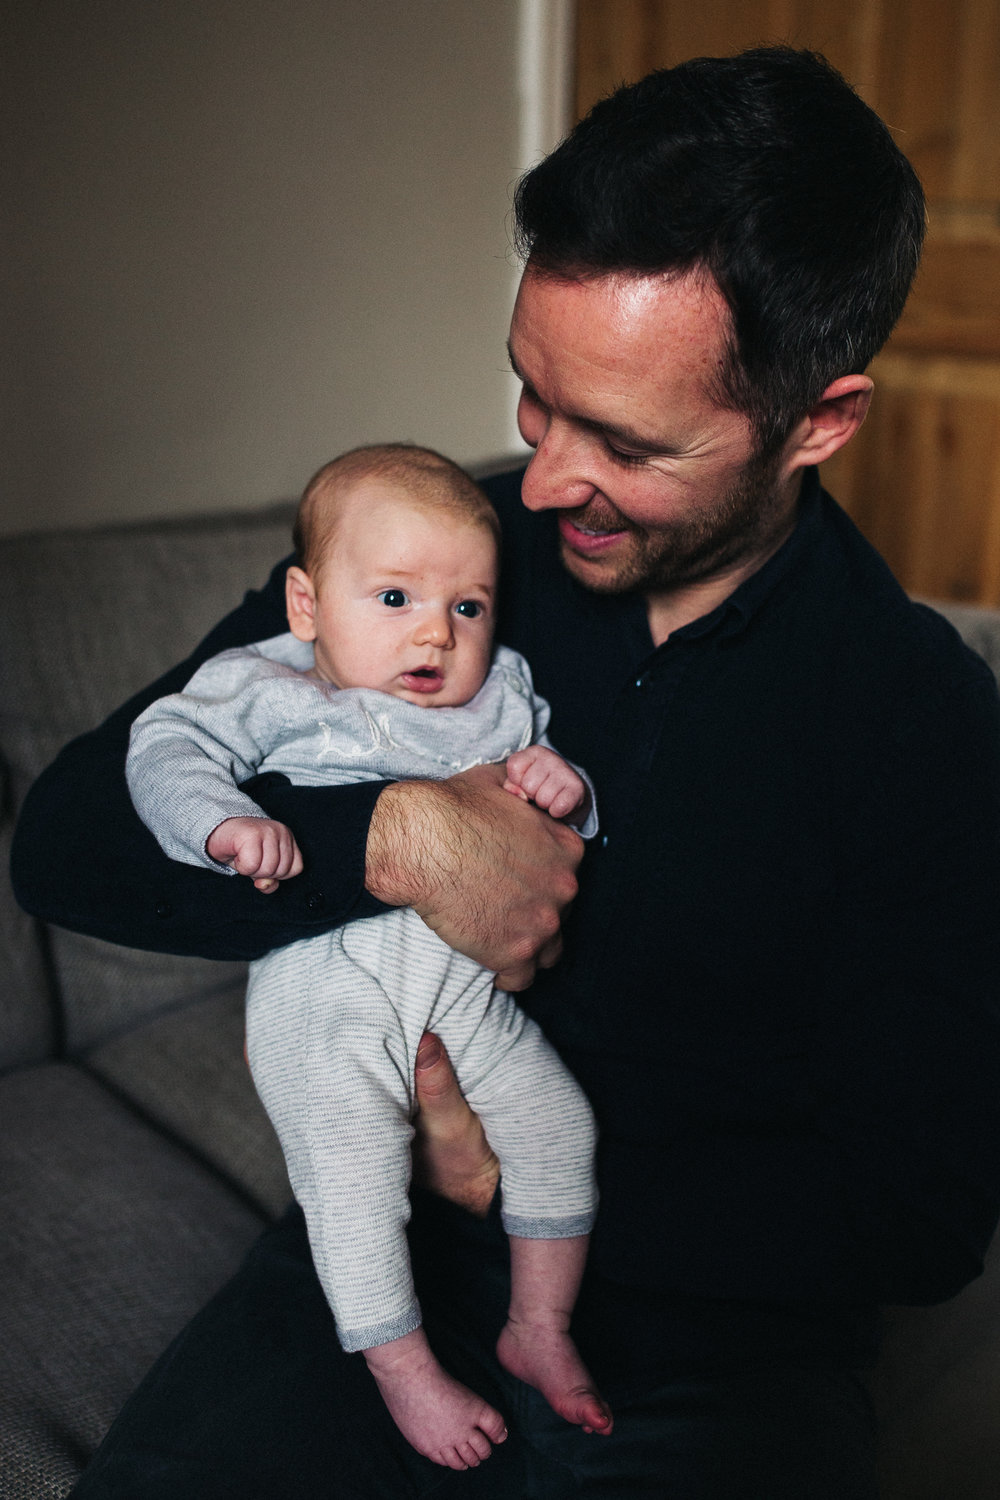 a man holds his son and looks at him. creative and relaxed family photography at home teesside middlesbrough stockton north east north yorkshire. stop motion wedding films uk